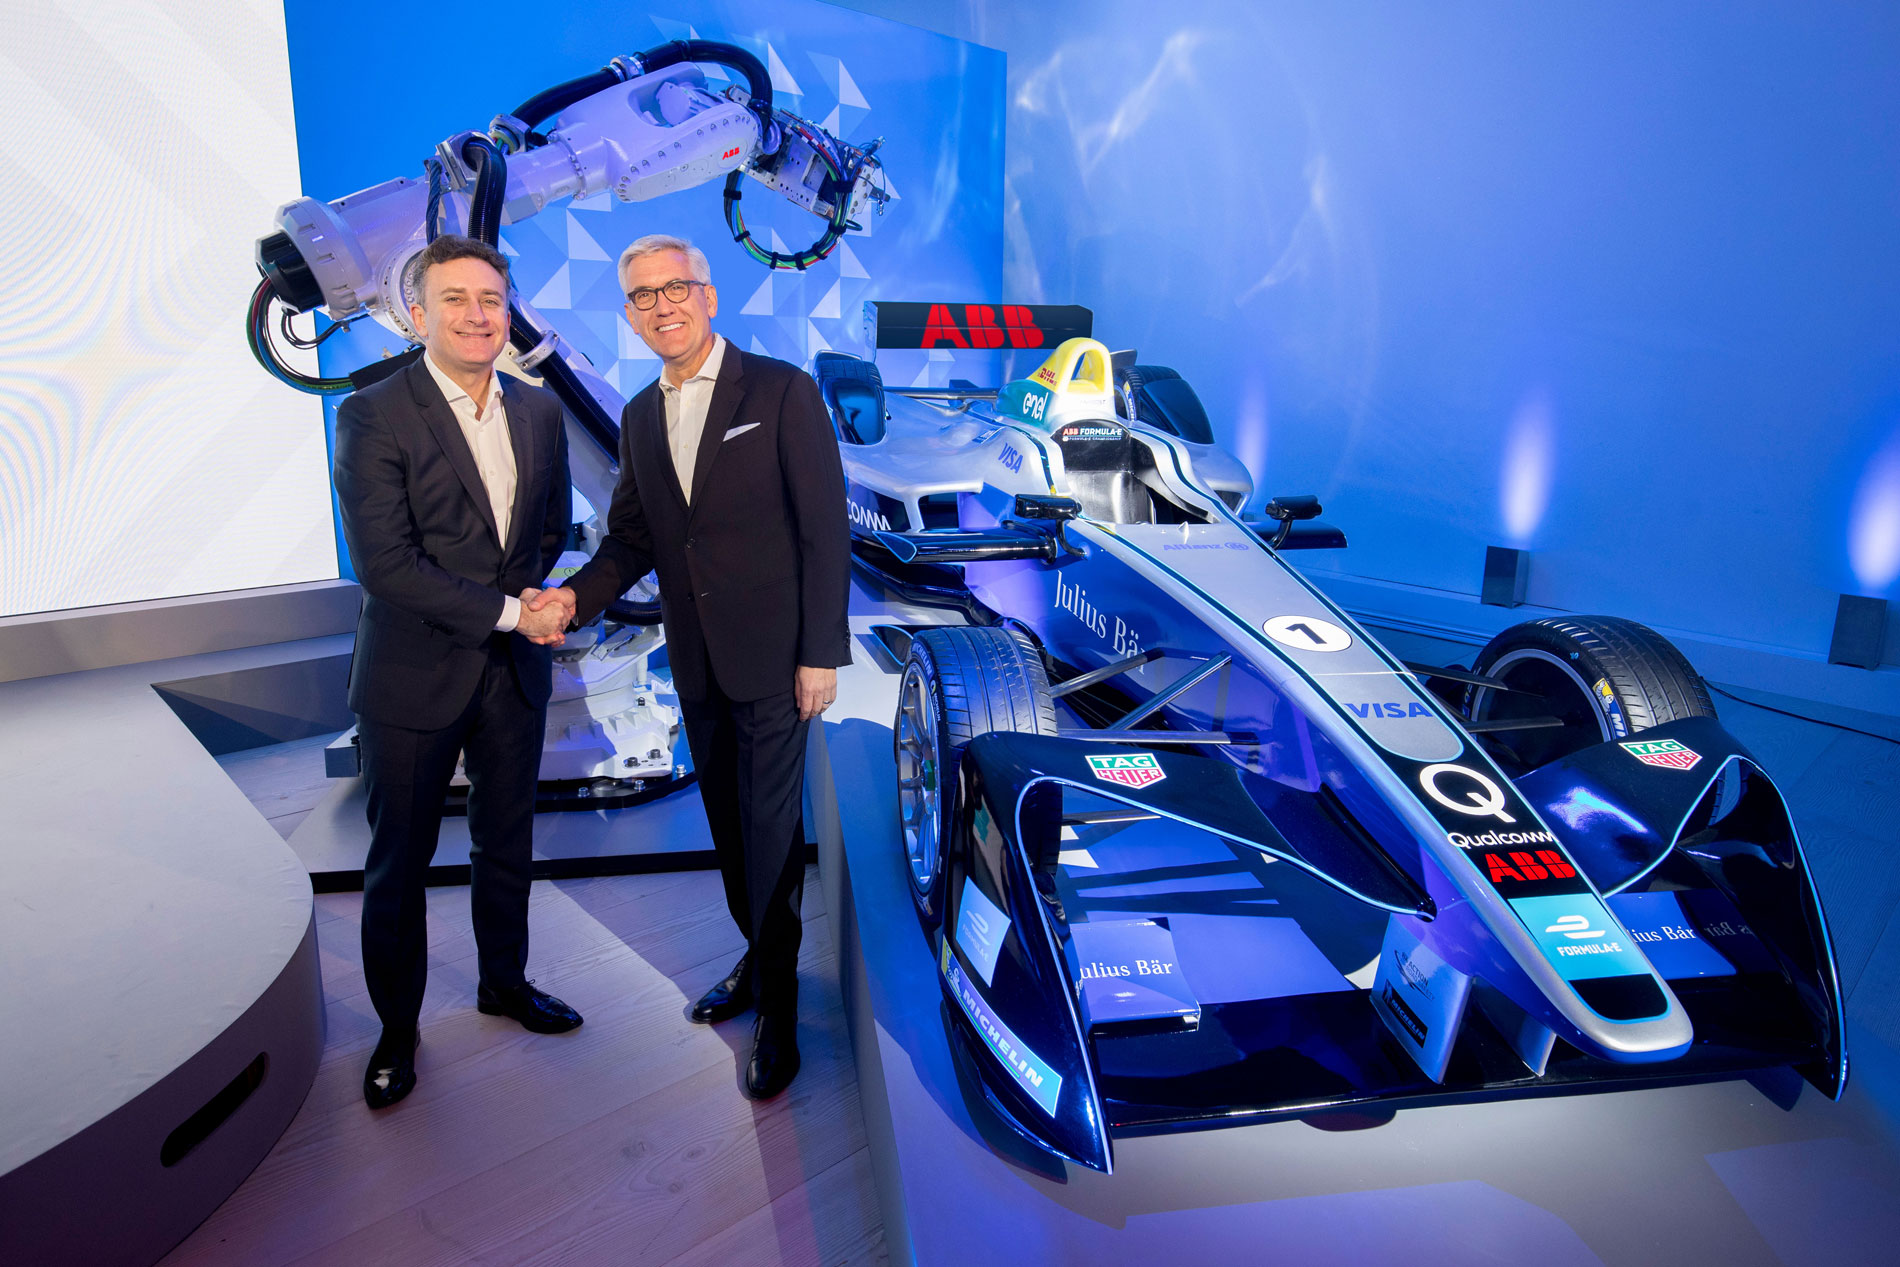 Formula E lands ABB as new title sponsor